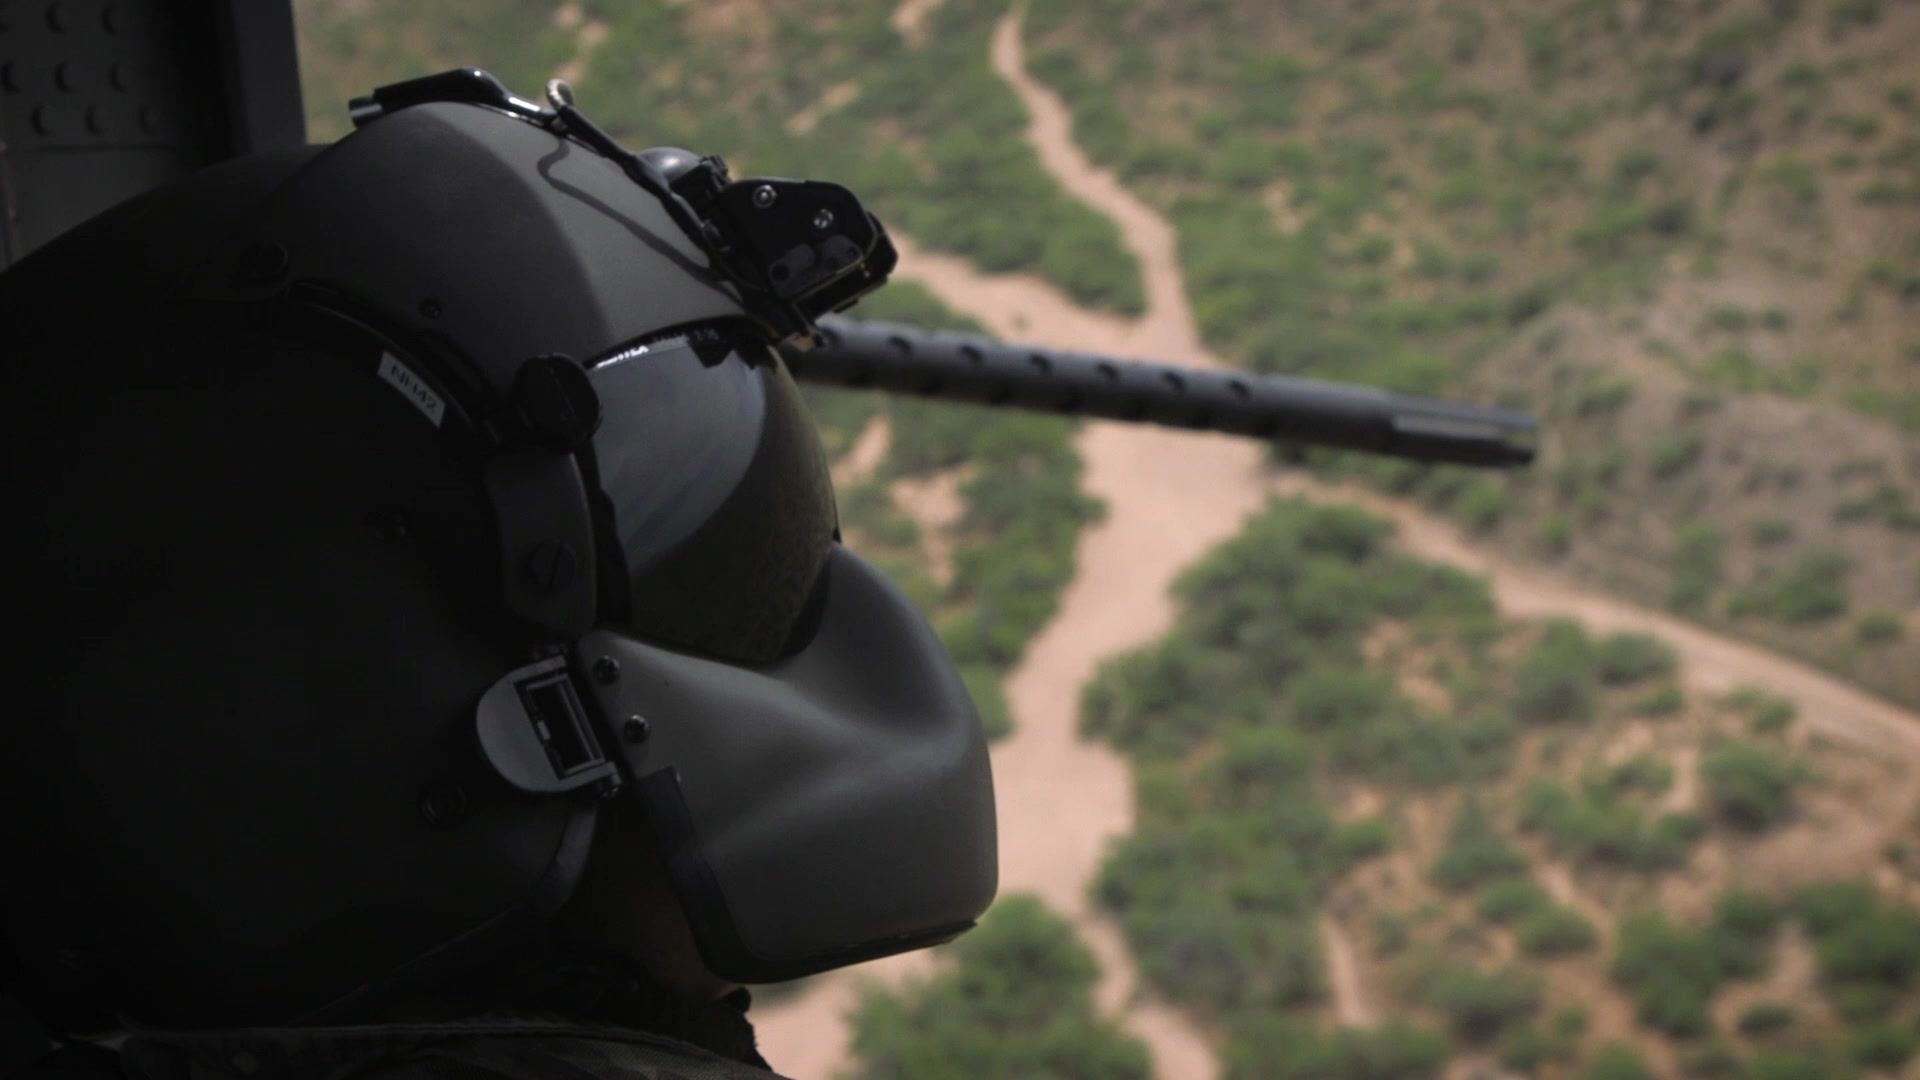 A video of the 55th Rescue Squadron